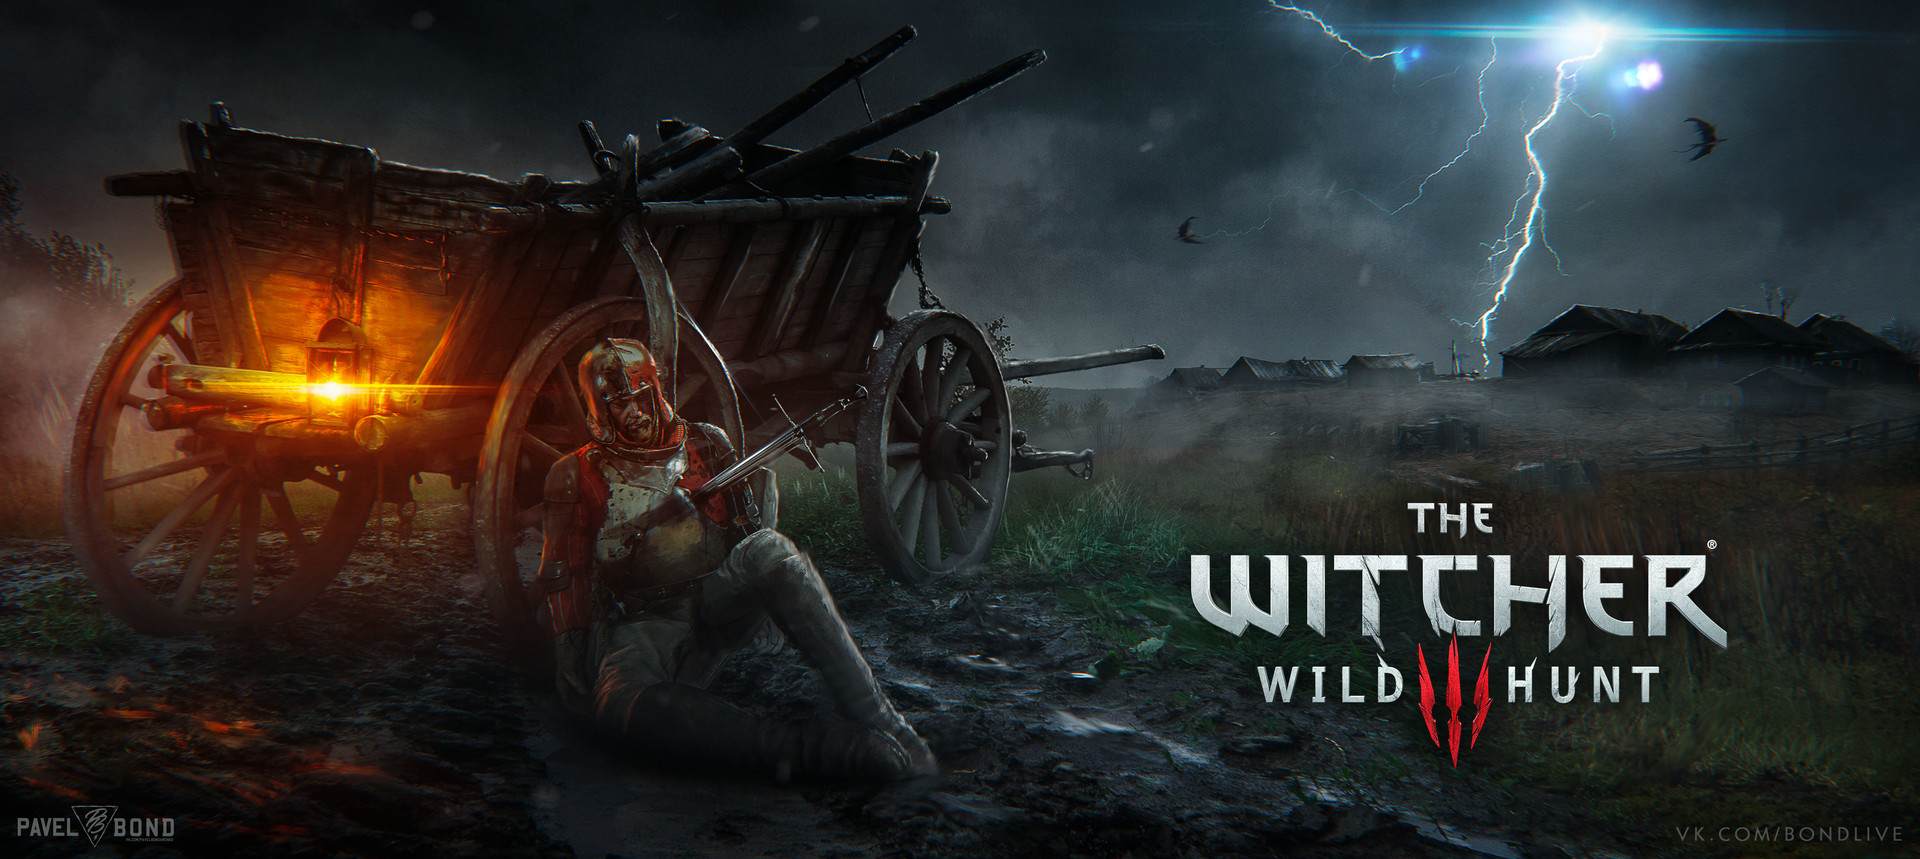 witcher 3 - Witcher 3: Wild Hunt, the